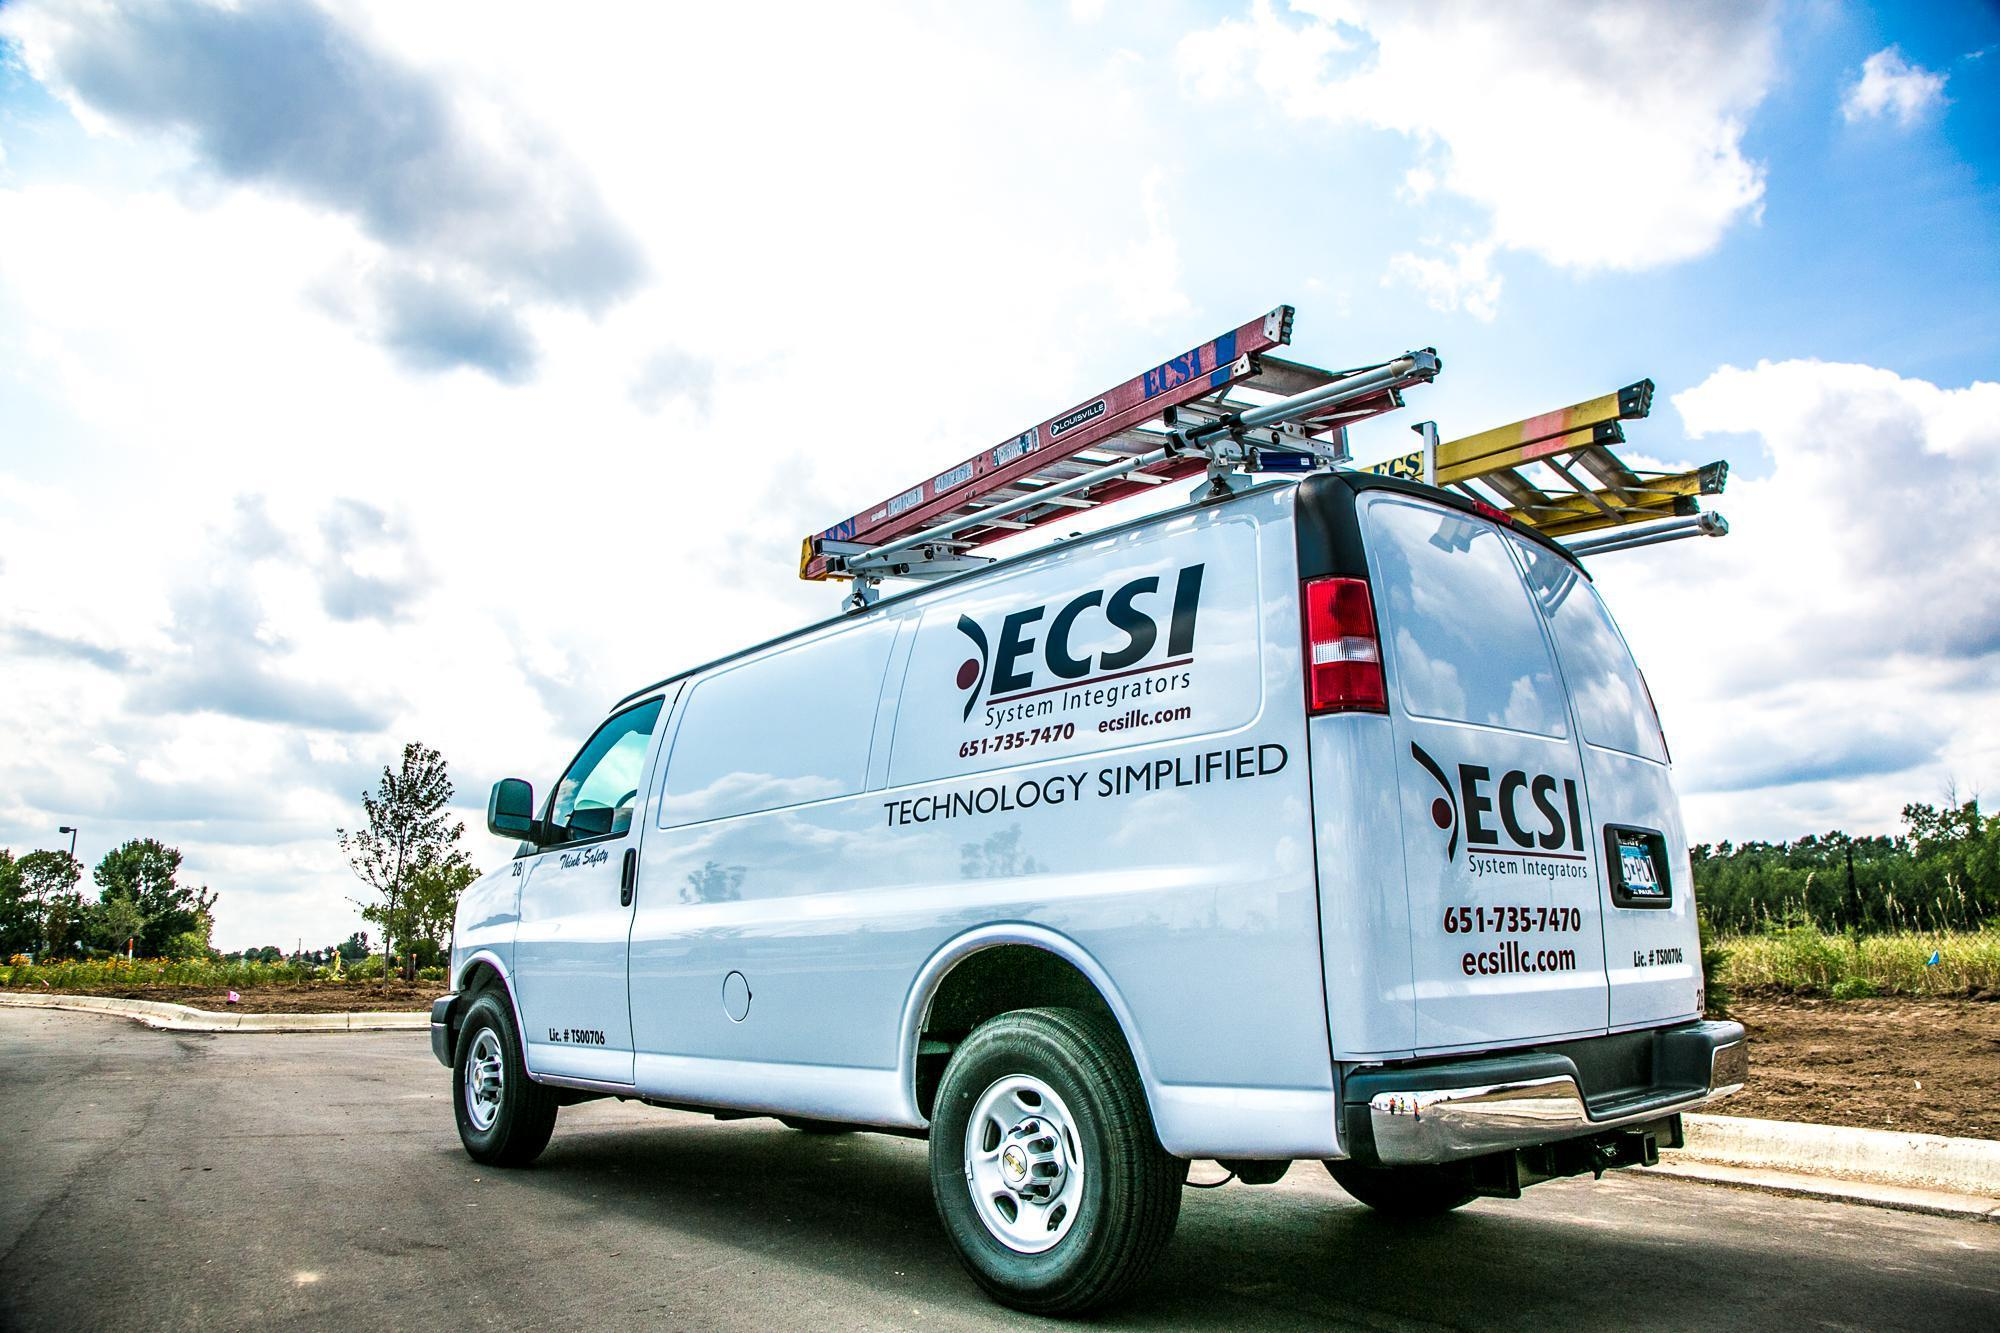 Photo of a ECSI System Integrators truck